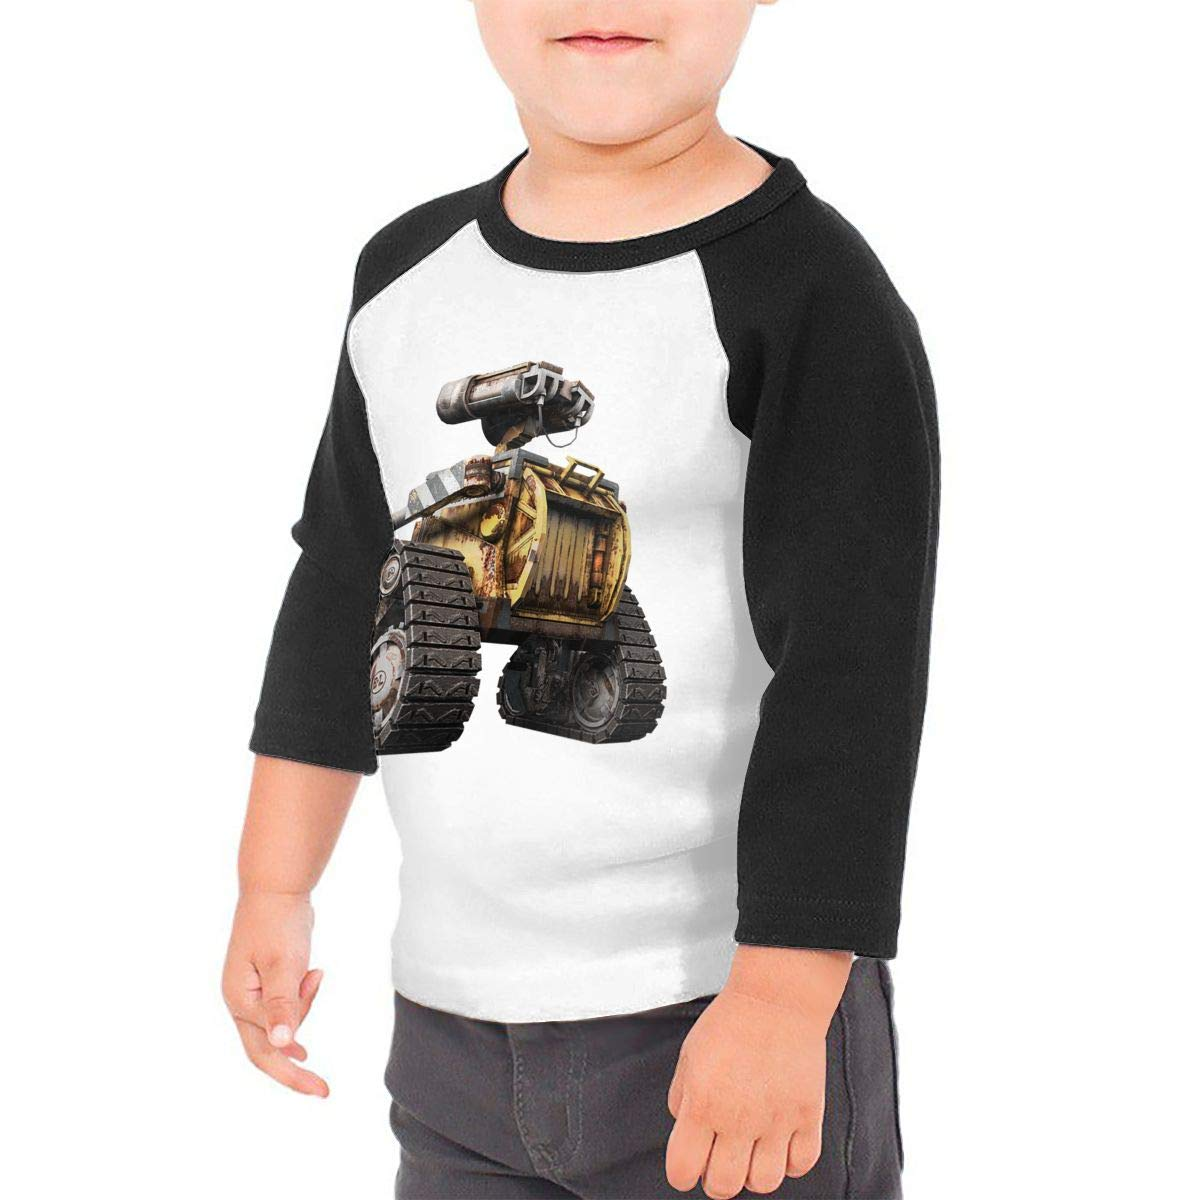 Kid's Toddler WALL E 3/4 Sleeve Raglan Baseball Jersey For 2-6T Fillmore-M